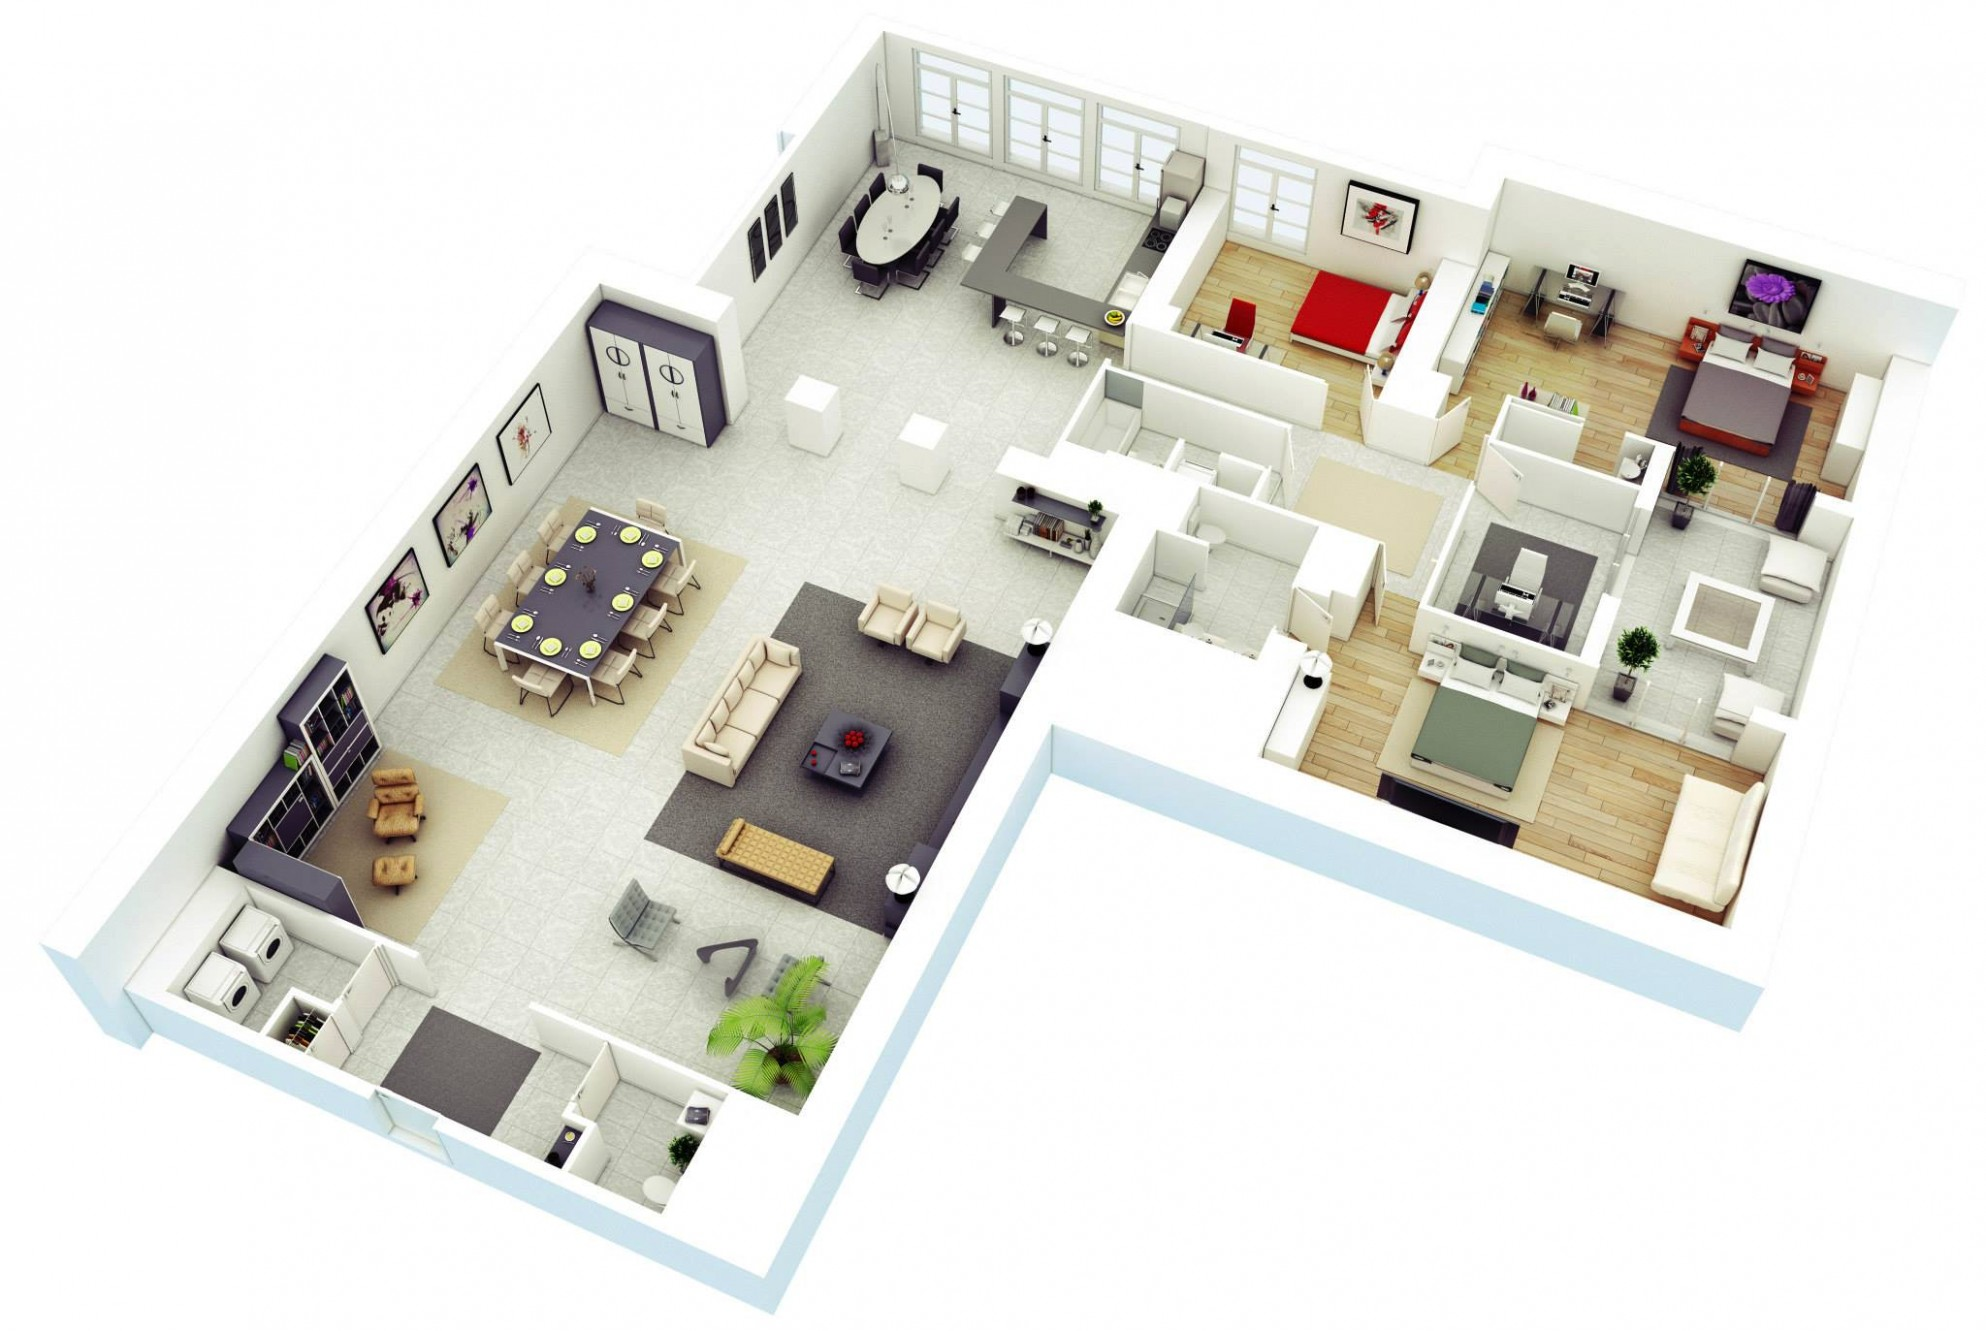 12 Best Free Home and Interior Design Apps, Software and Tools - Apartment Design Tool Online